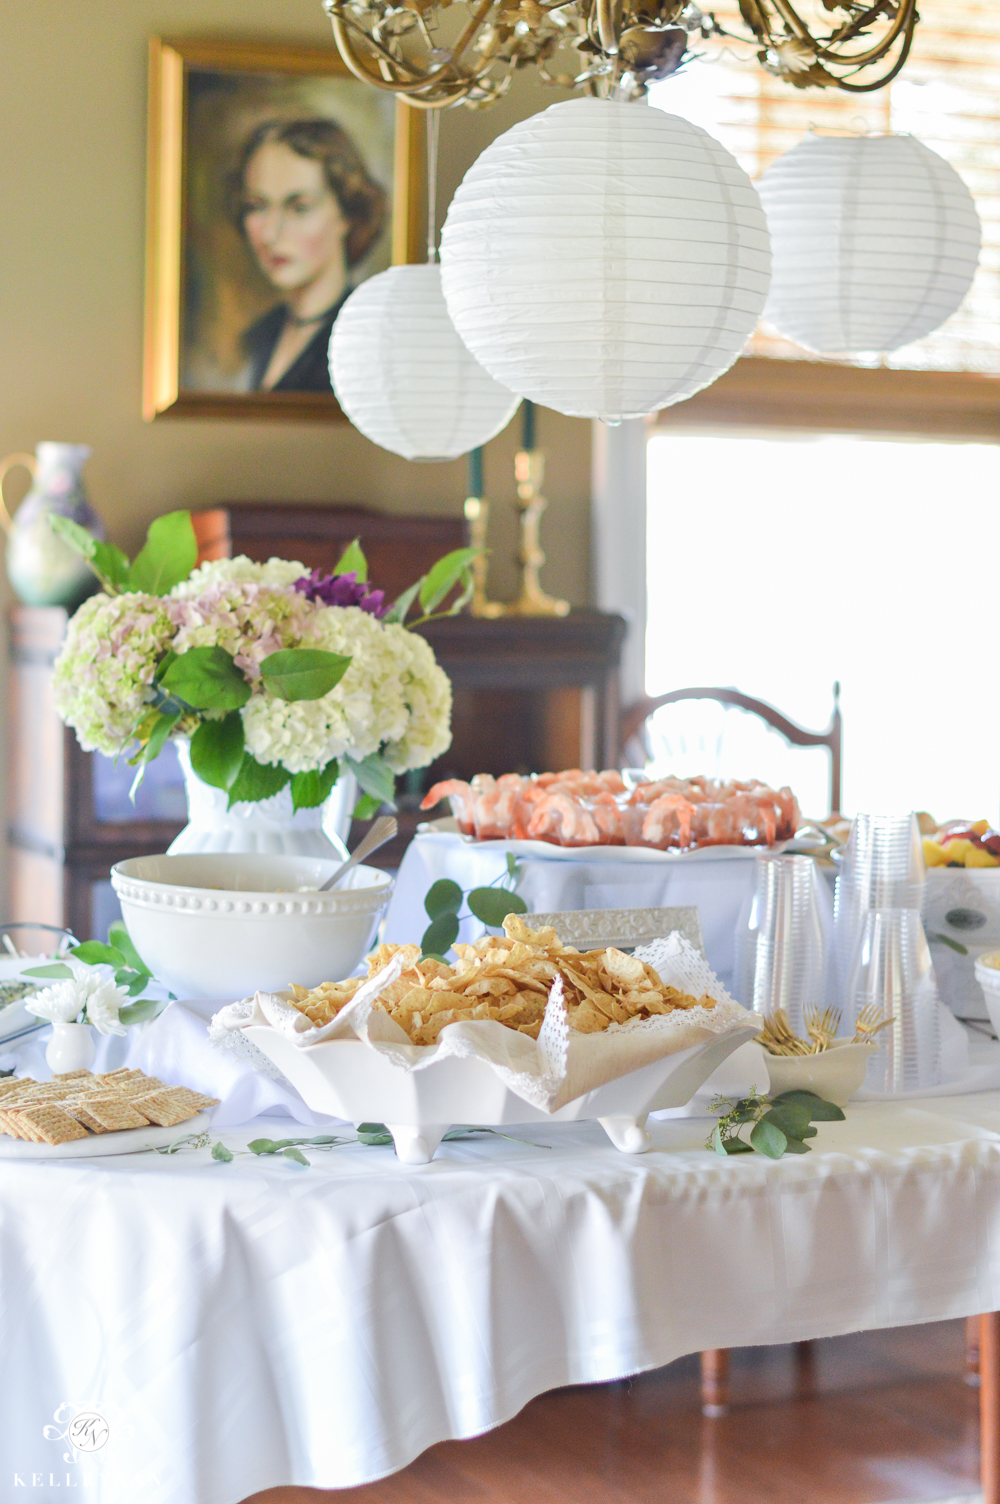 Southern Garden Party Bridal Shower Ideas- shower food table setup at different heights